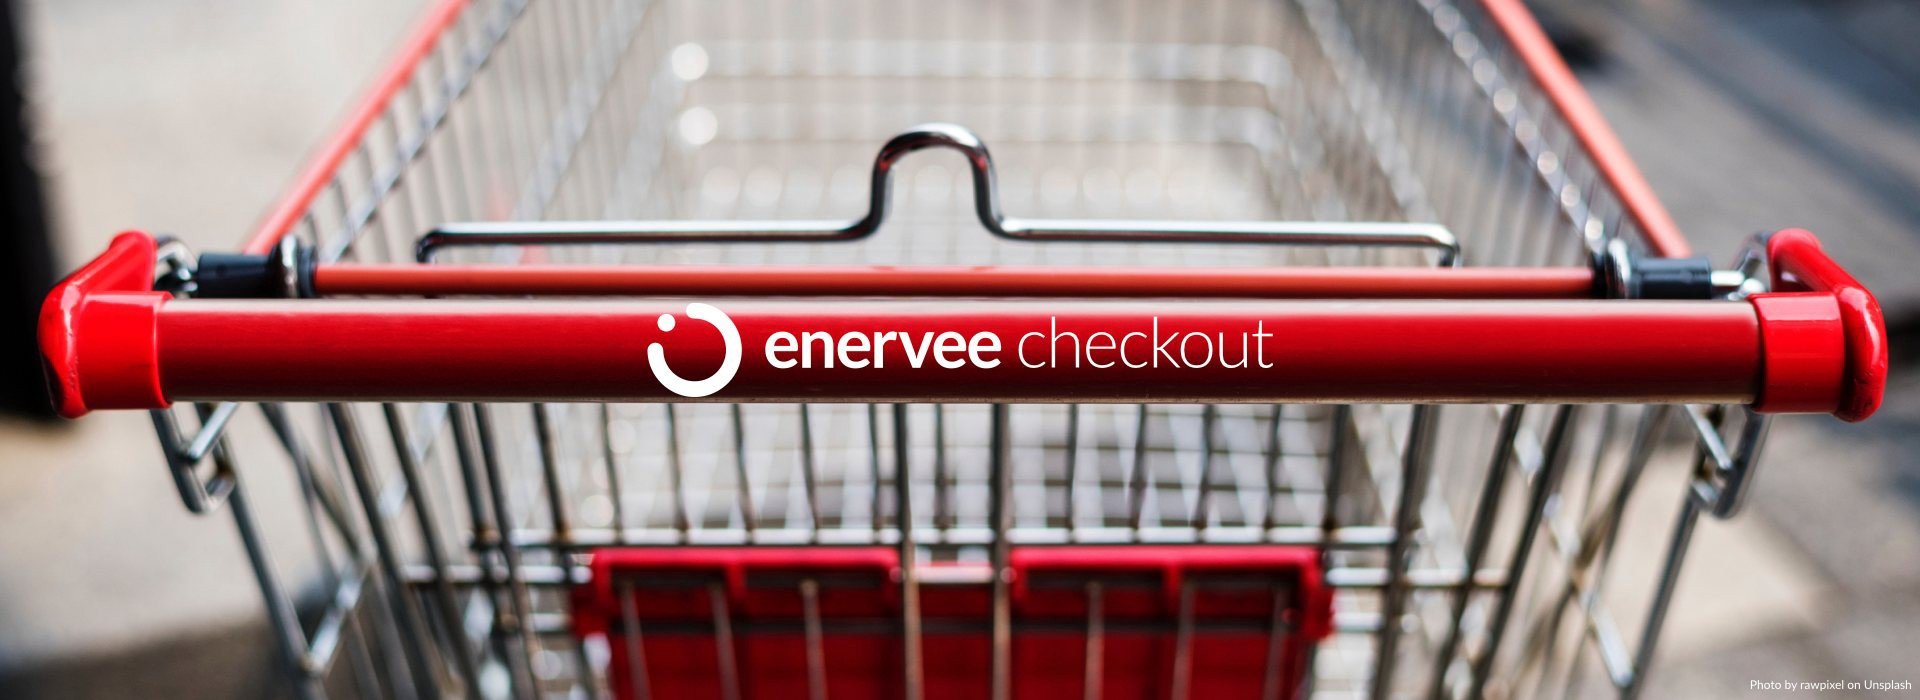 Check out Enervee's new Checkout